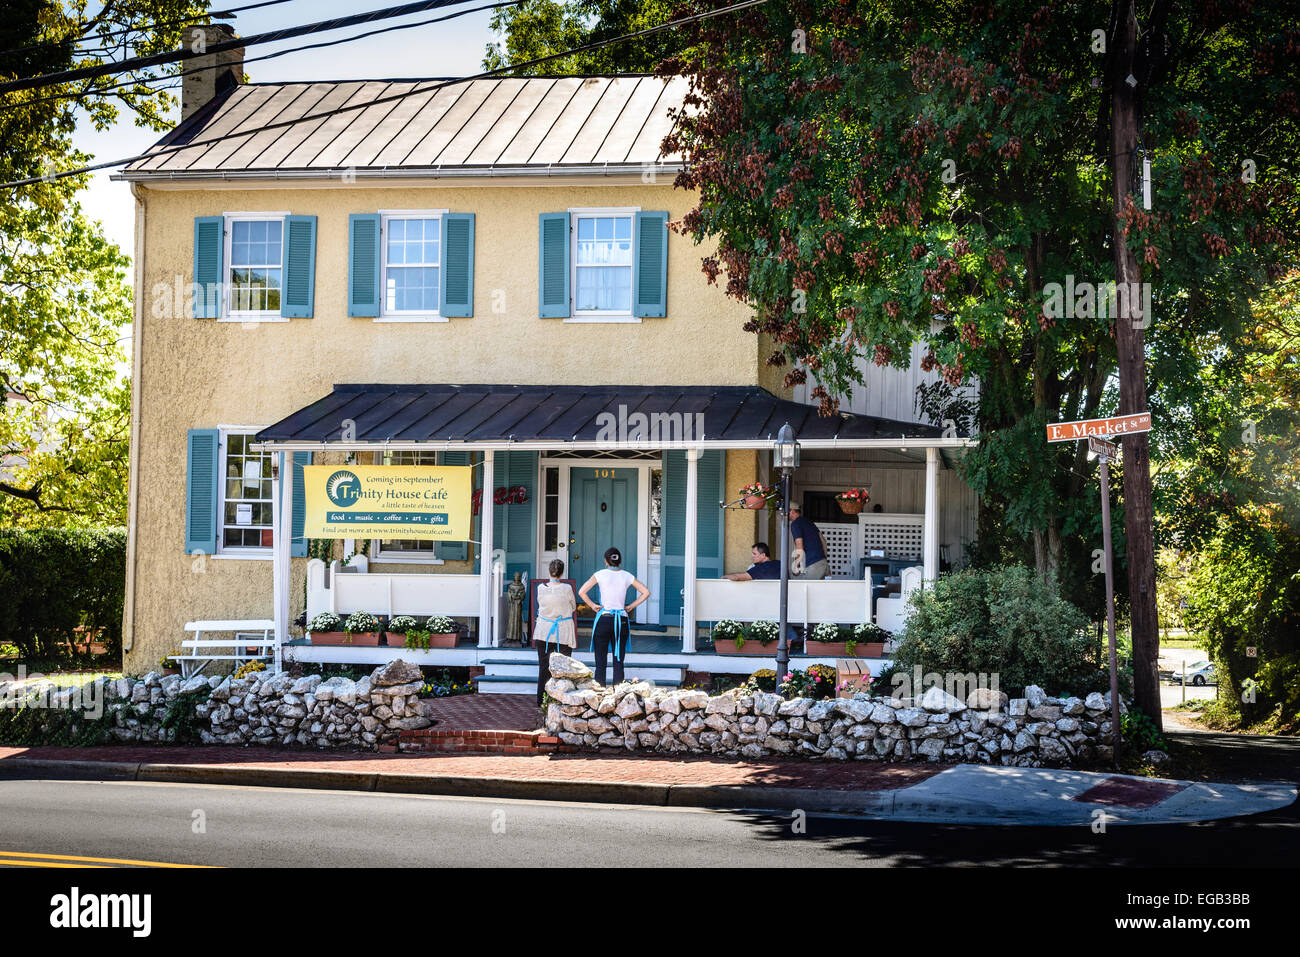 Nonprofit Trinity House Café, George Head House, 101 East Market Street, Leesburg, Virginia - Stock Image